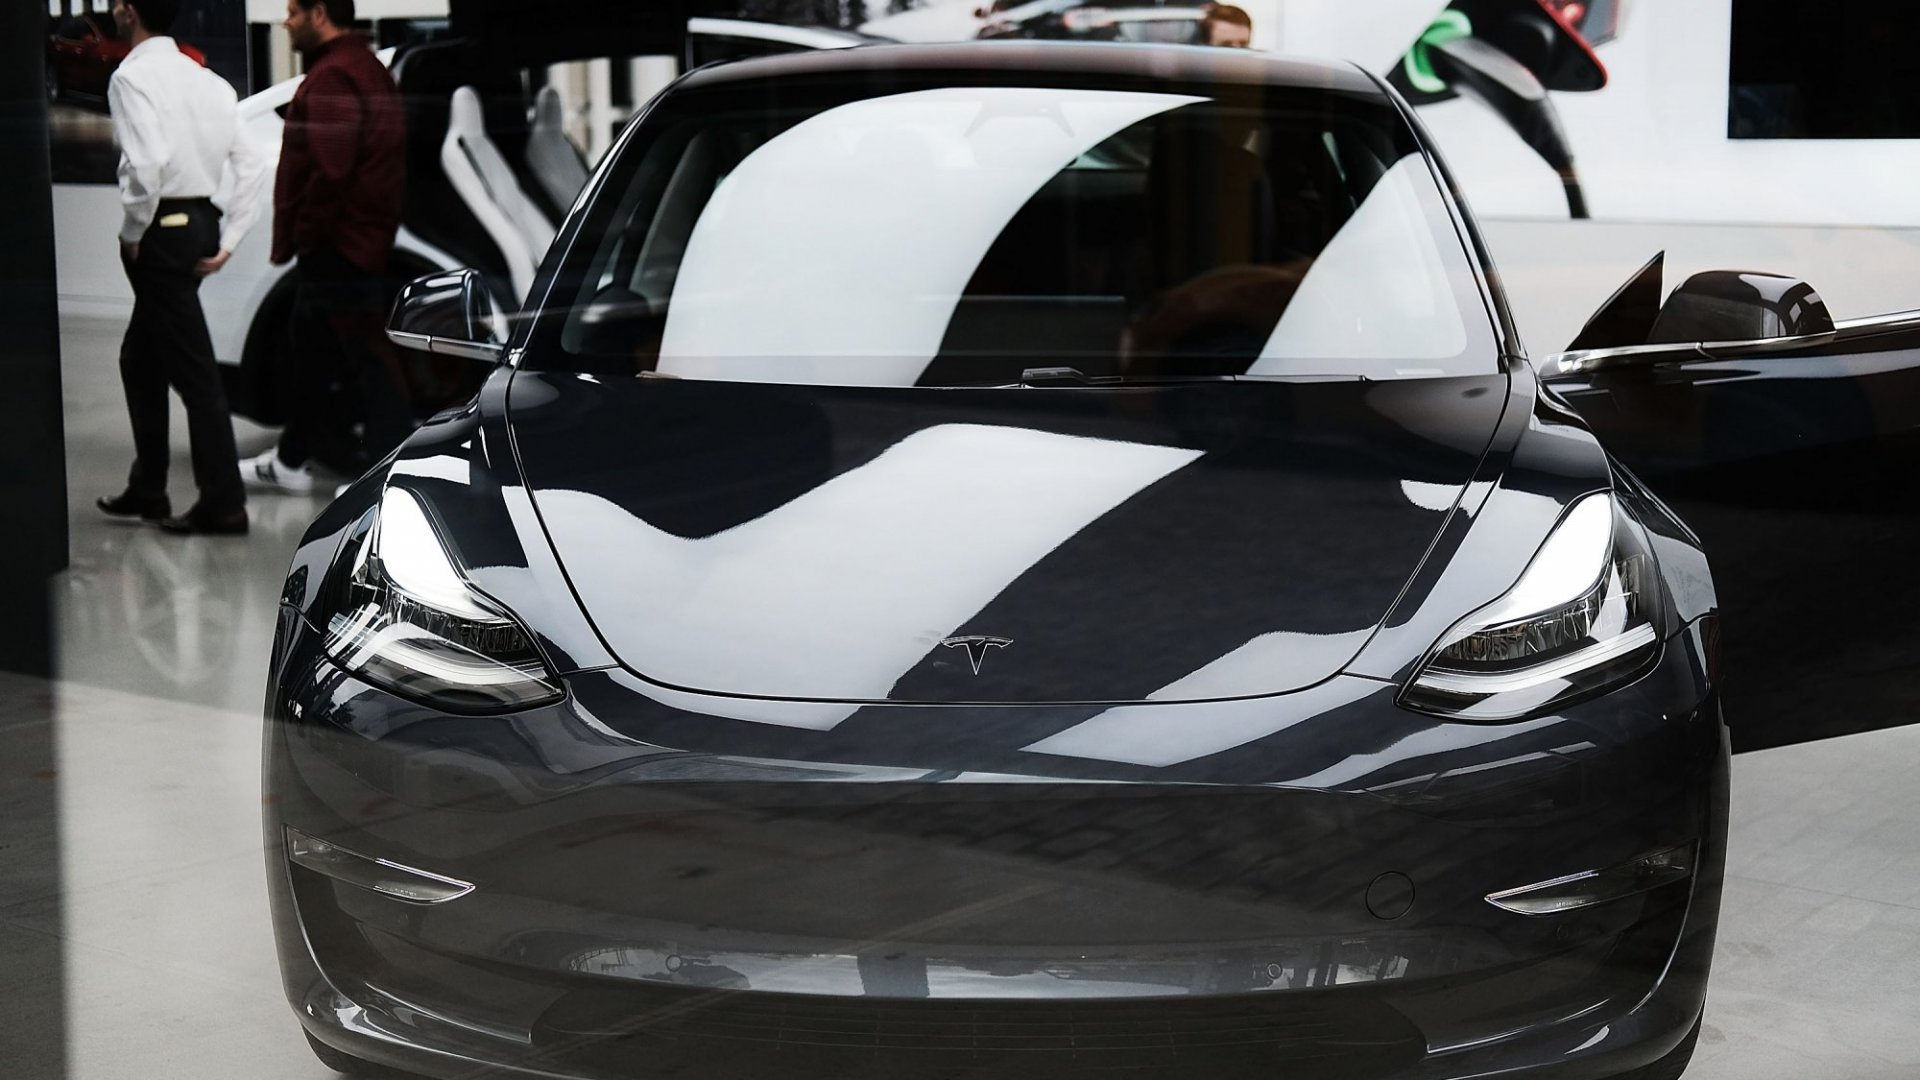 Tesla's Logistics Have Been Lagging. That's Why Elon Musk Just Personally Delivered a Model 3